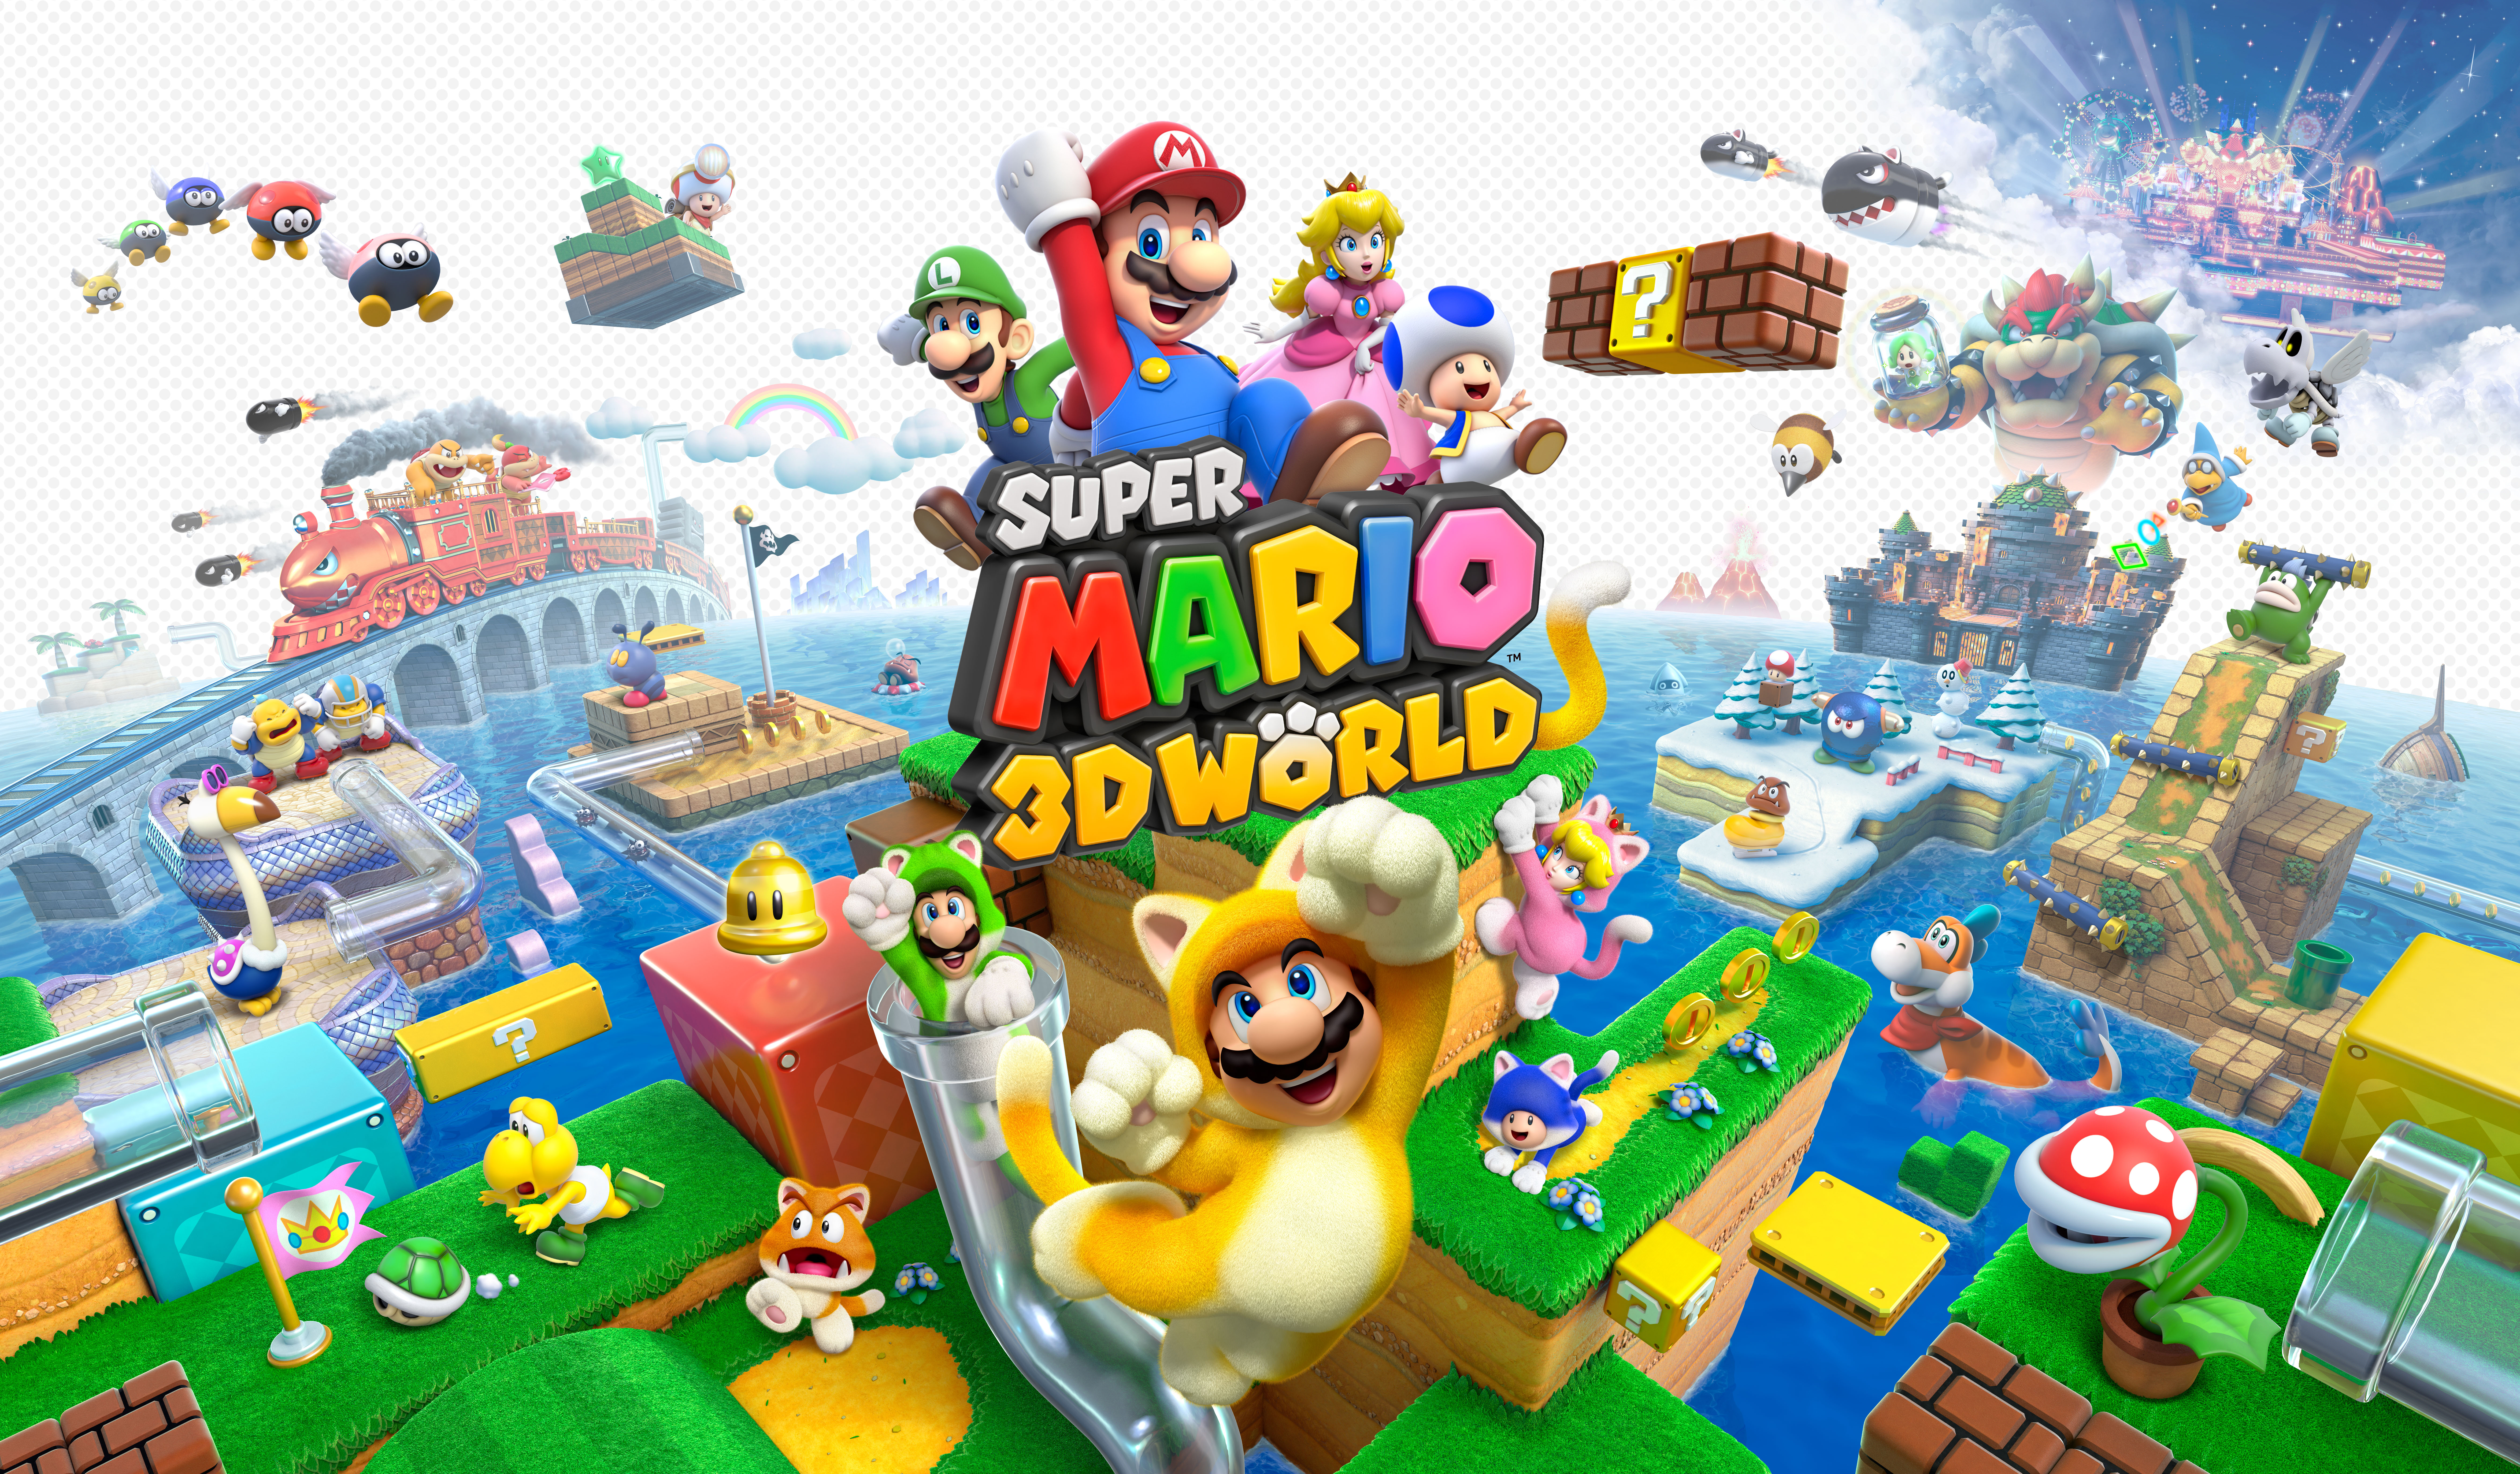 super mario 3d world deluxe nintendo switch release date